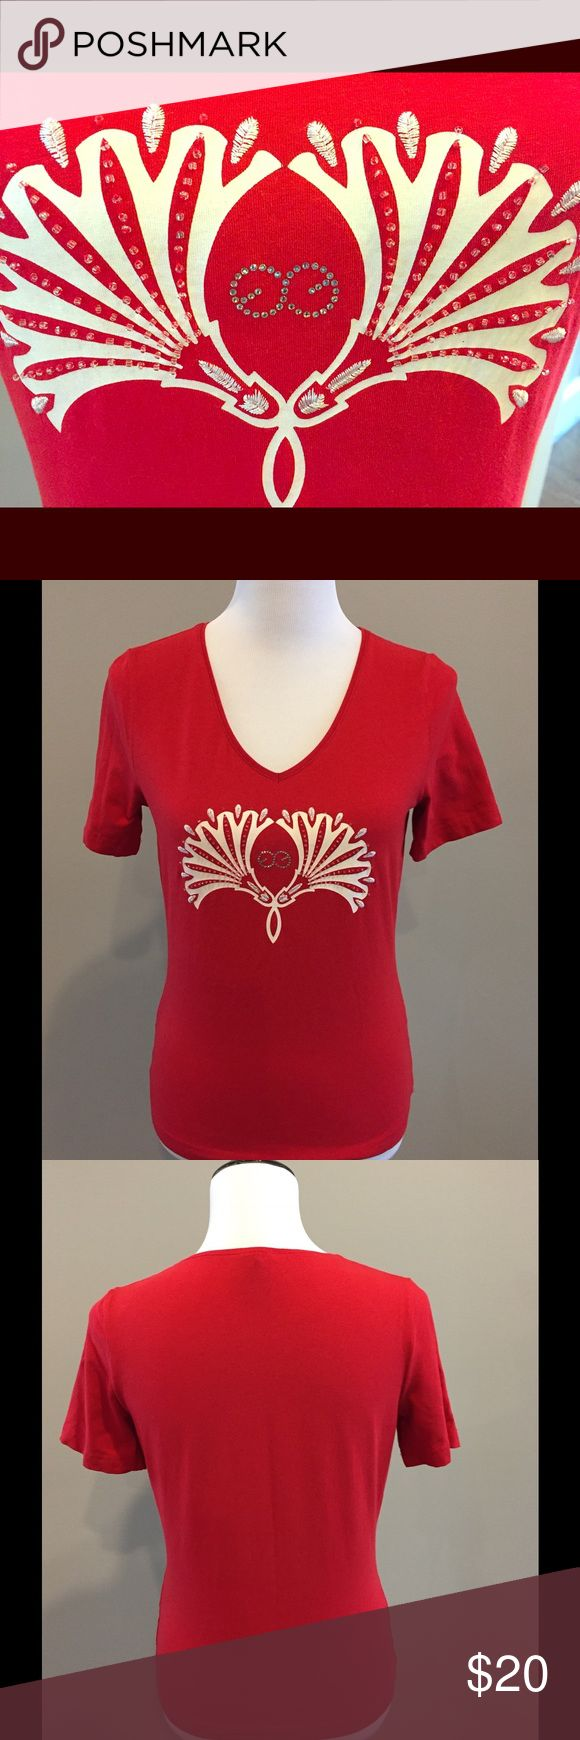 """Escada Sport Tshirt Escada Sport logo tshirt with stitch detail, beading and bling. Classic! About 23.5"""" long. Great condition; no rips, stains or missing embellishments. Escada Sport Tops Tees - Short Sleeve"""